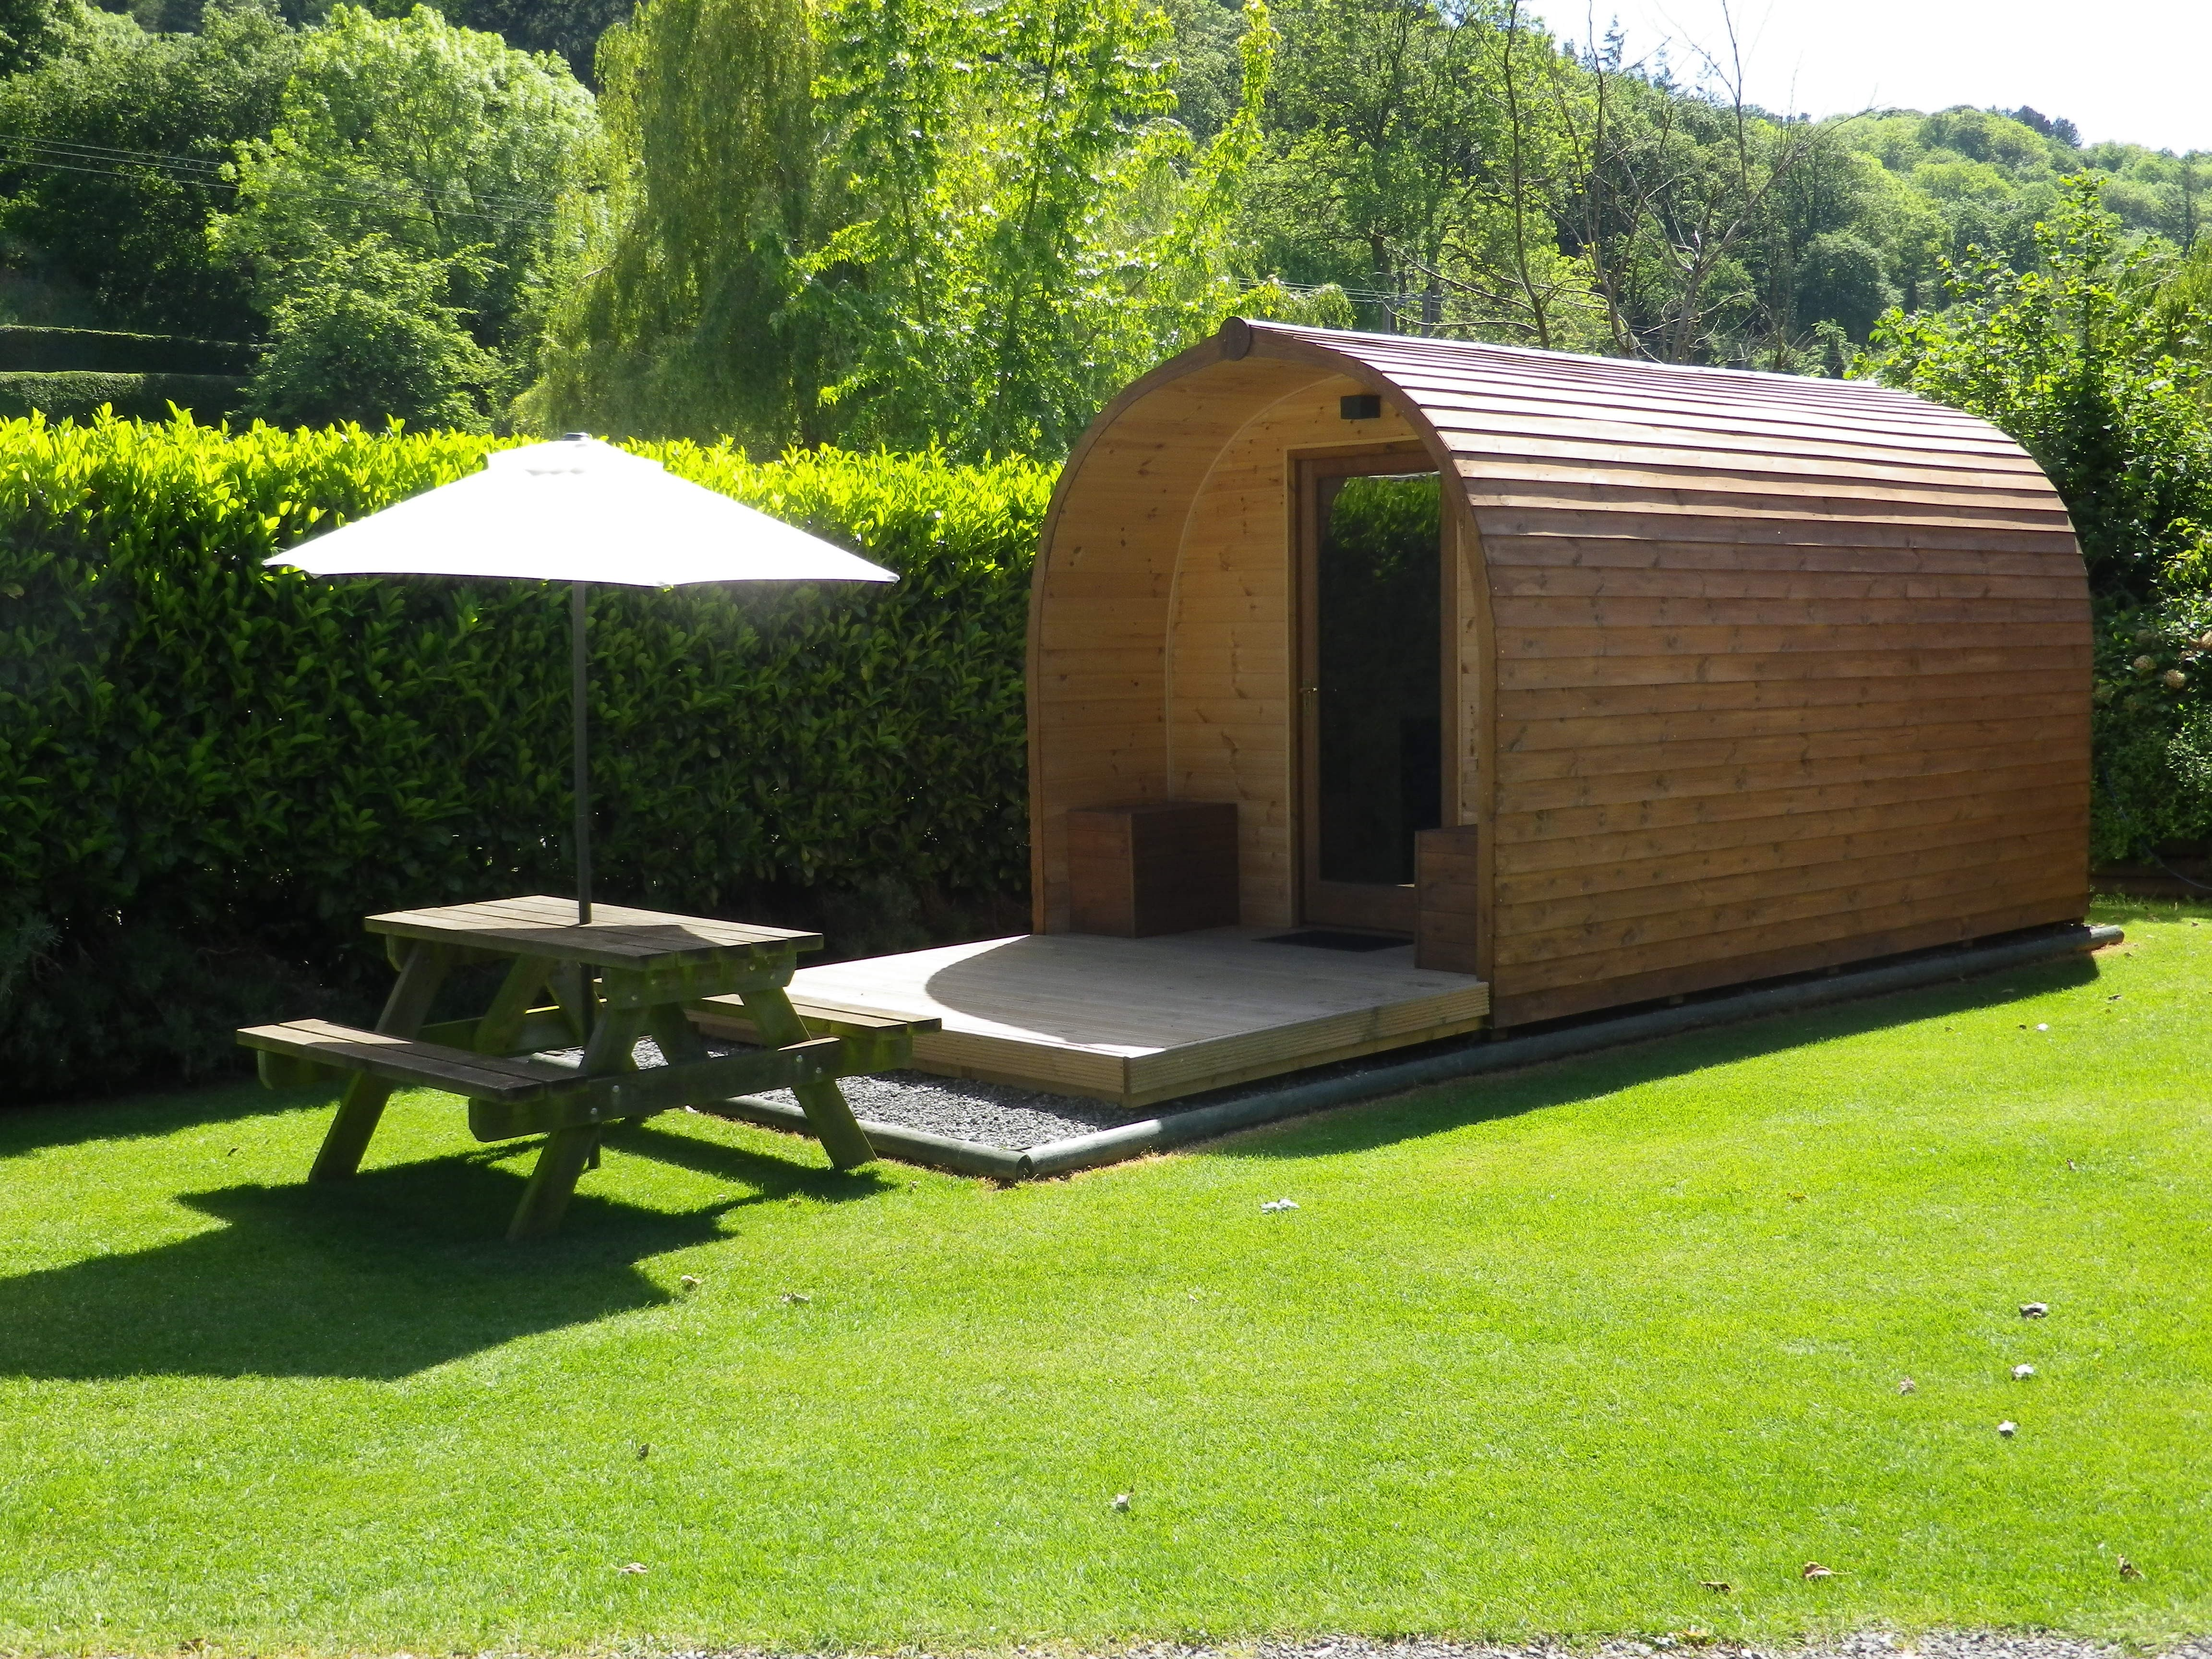 Hire a Glamping Pod on the grounds of Lucksall Caravan and Camping Park.